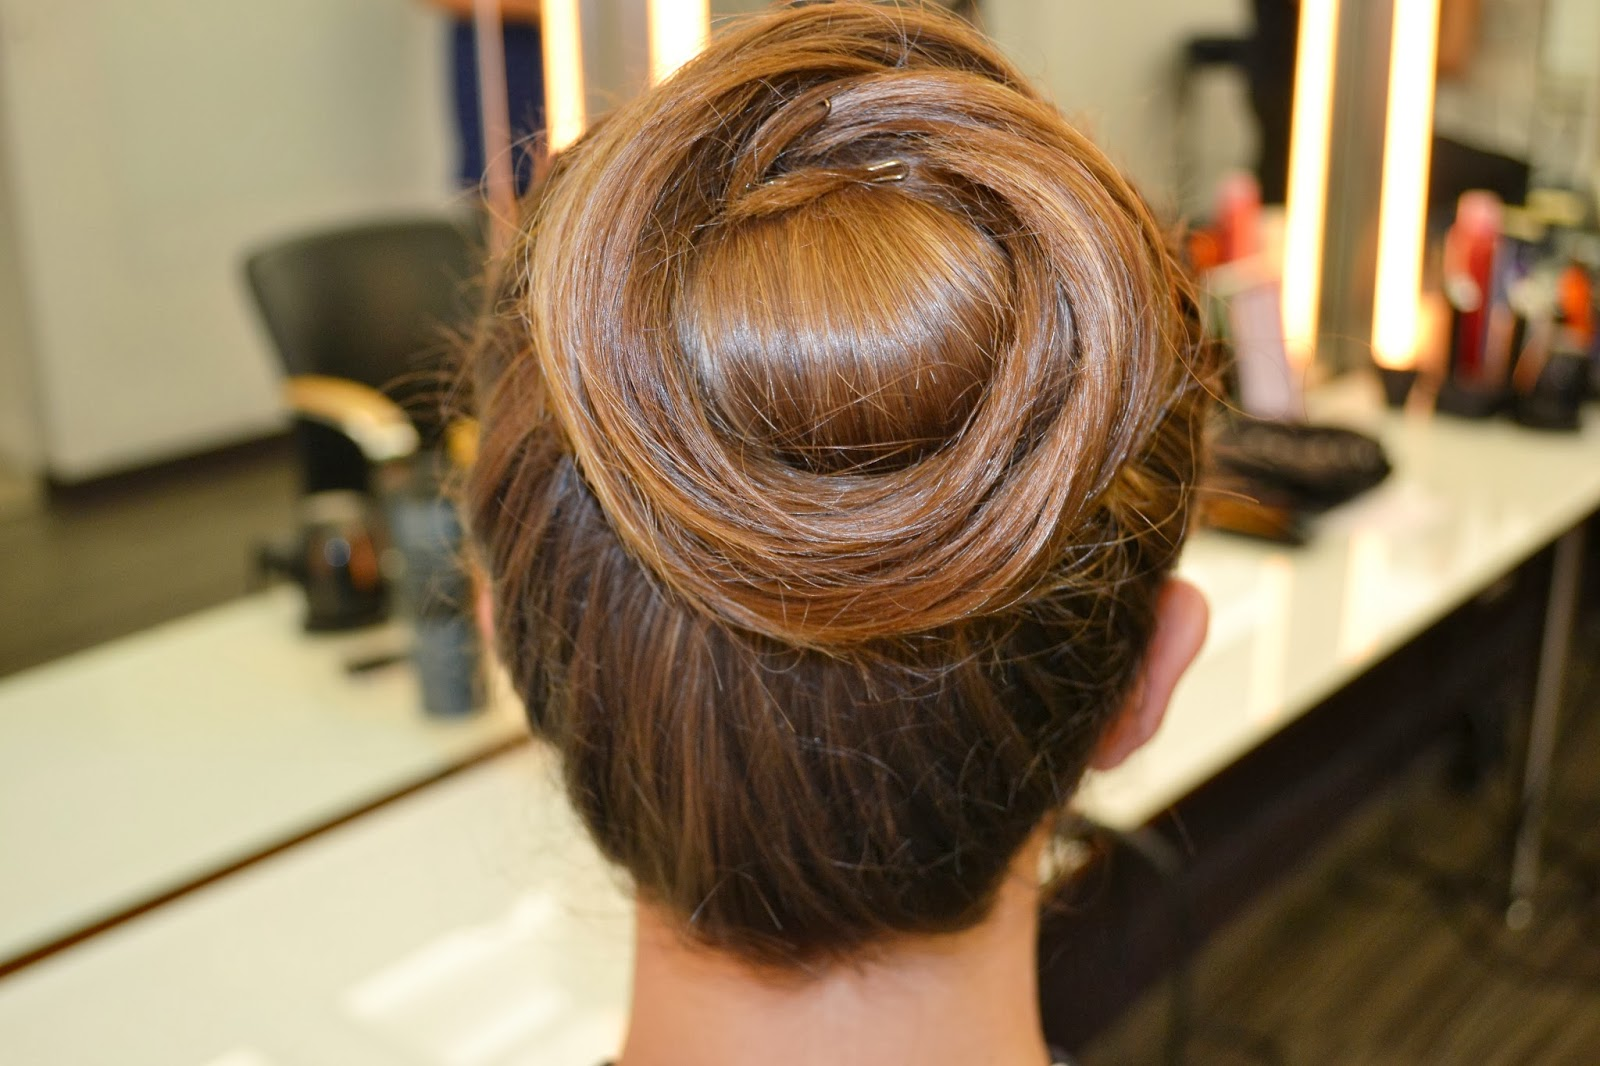 Cinnabun. I Received This Fun Hair Style ...